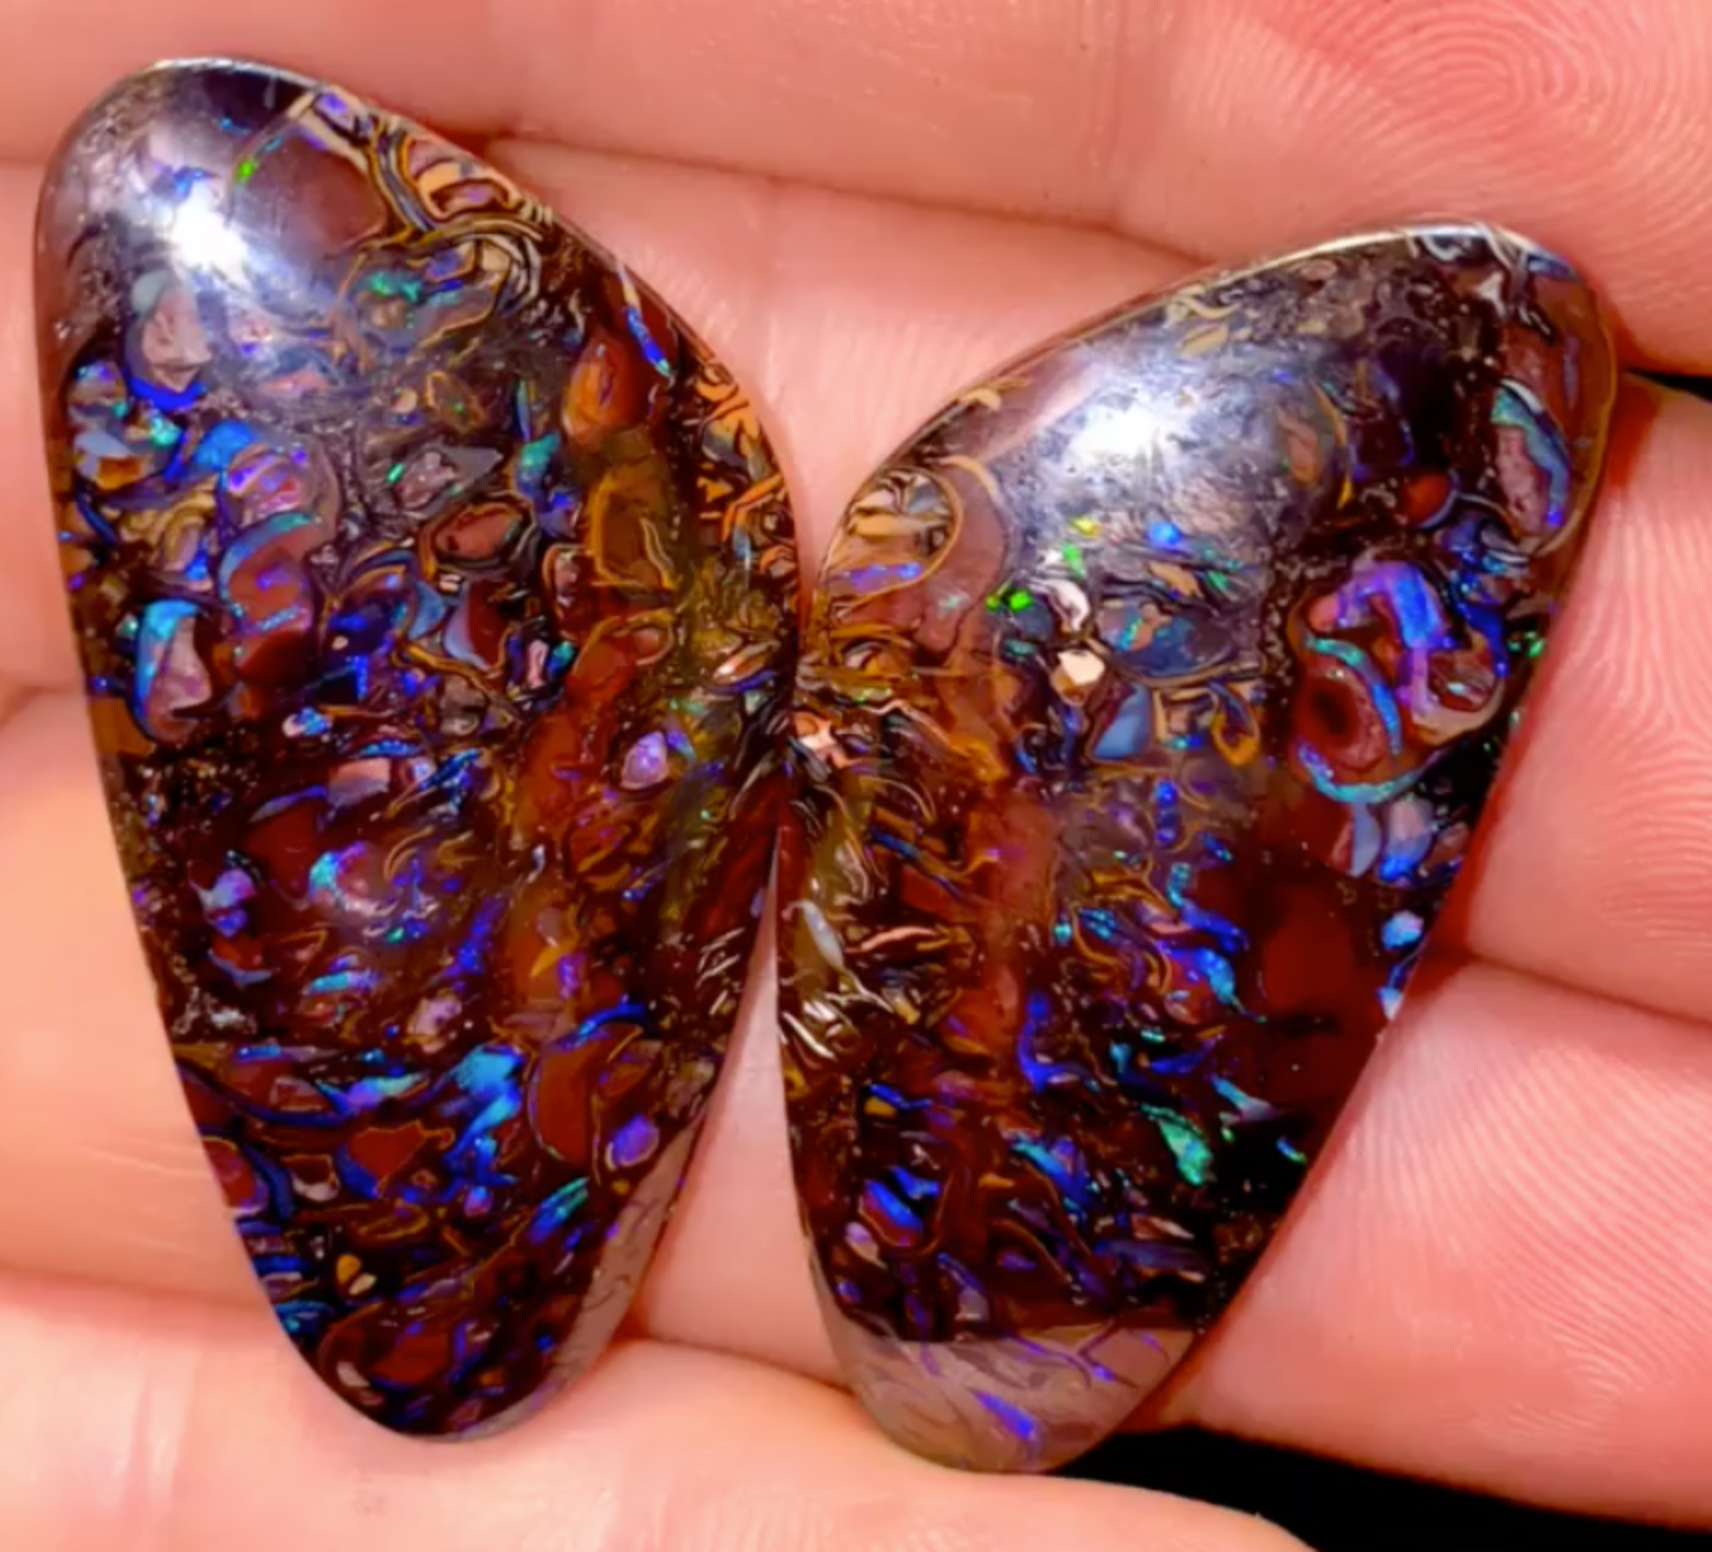 94cts - .3 pair of solid Koroit opals from a boulder matrix formation.